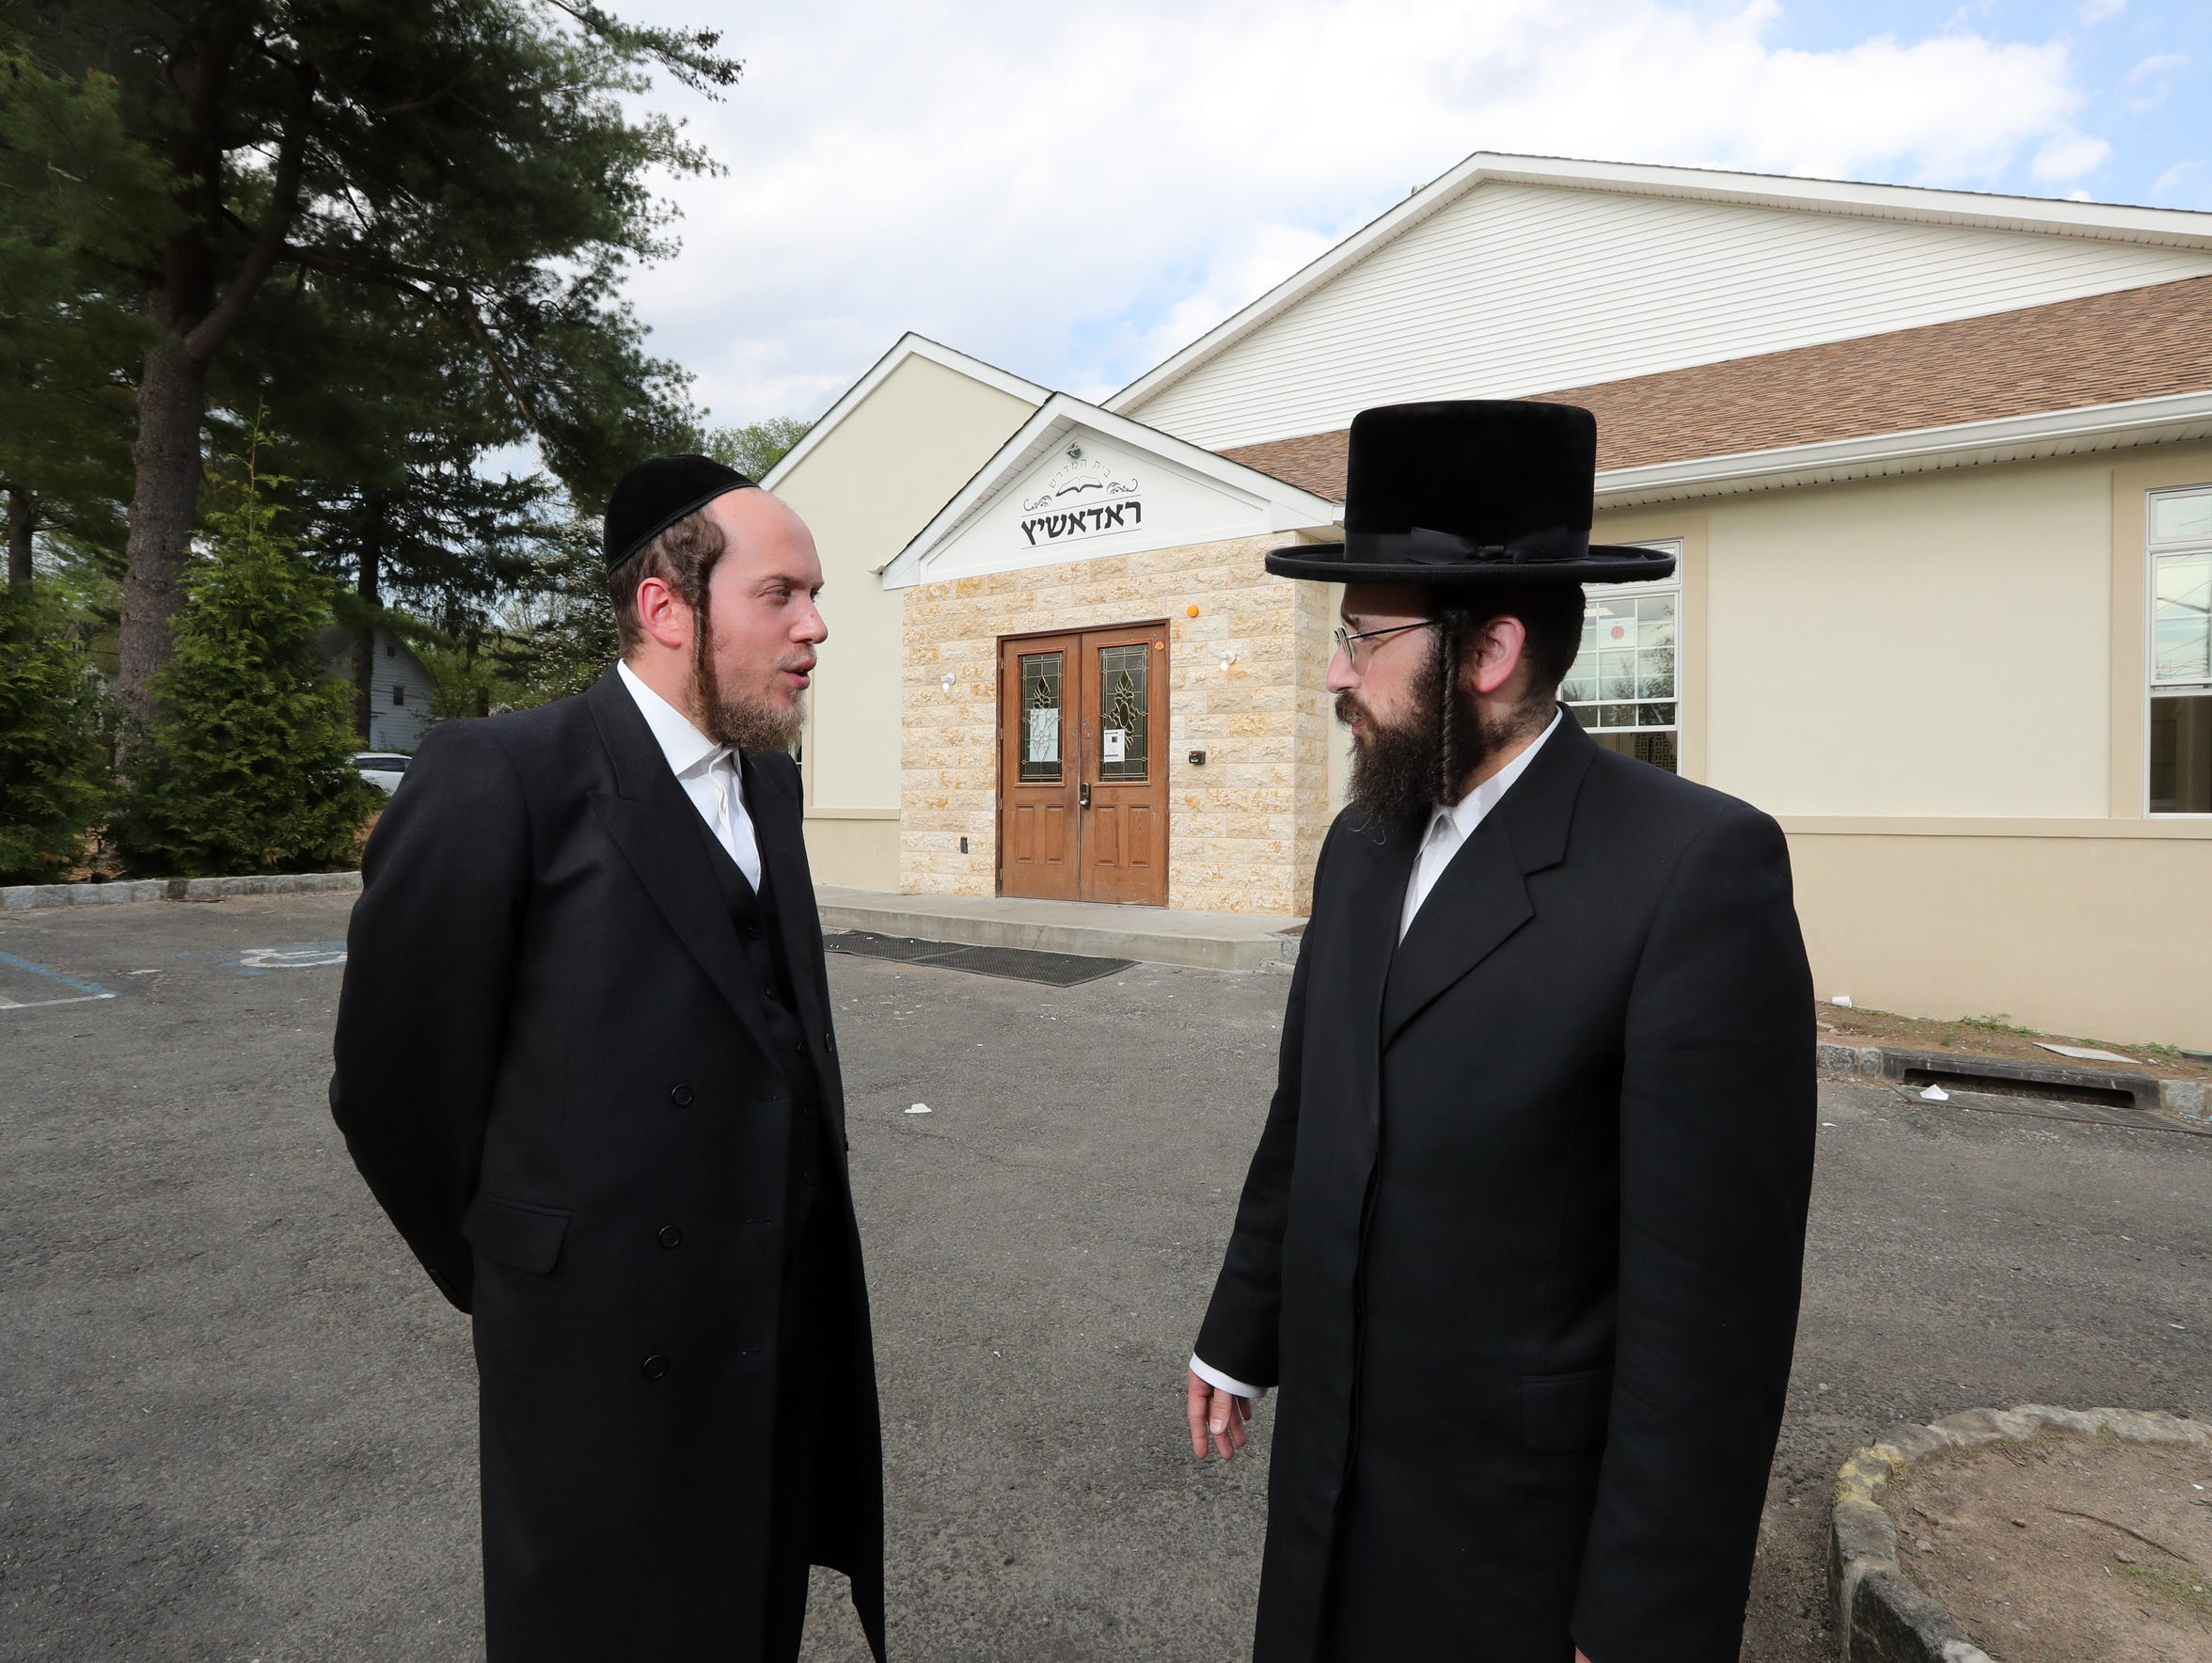 Airmont residents Yehuda Zorger and Eliezer Halberstam,